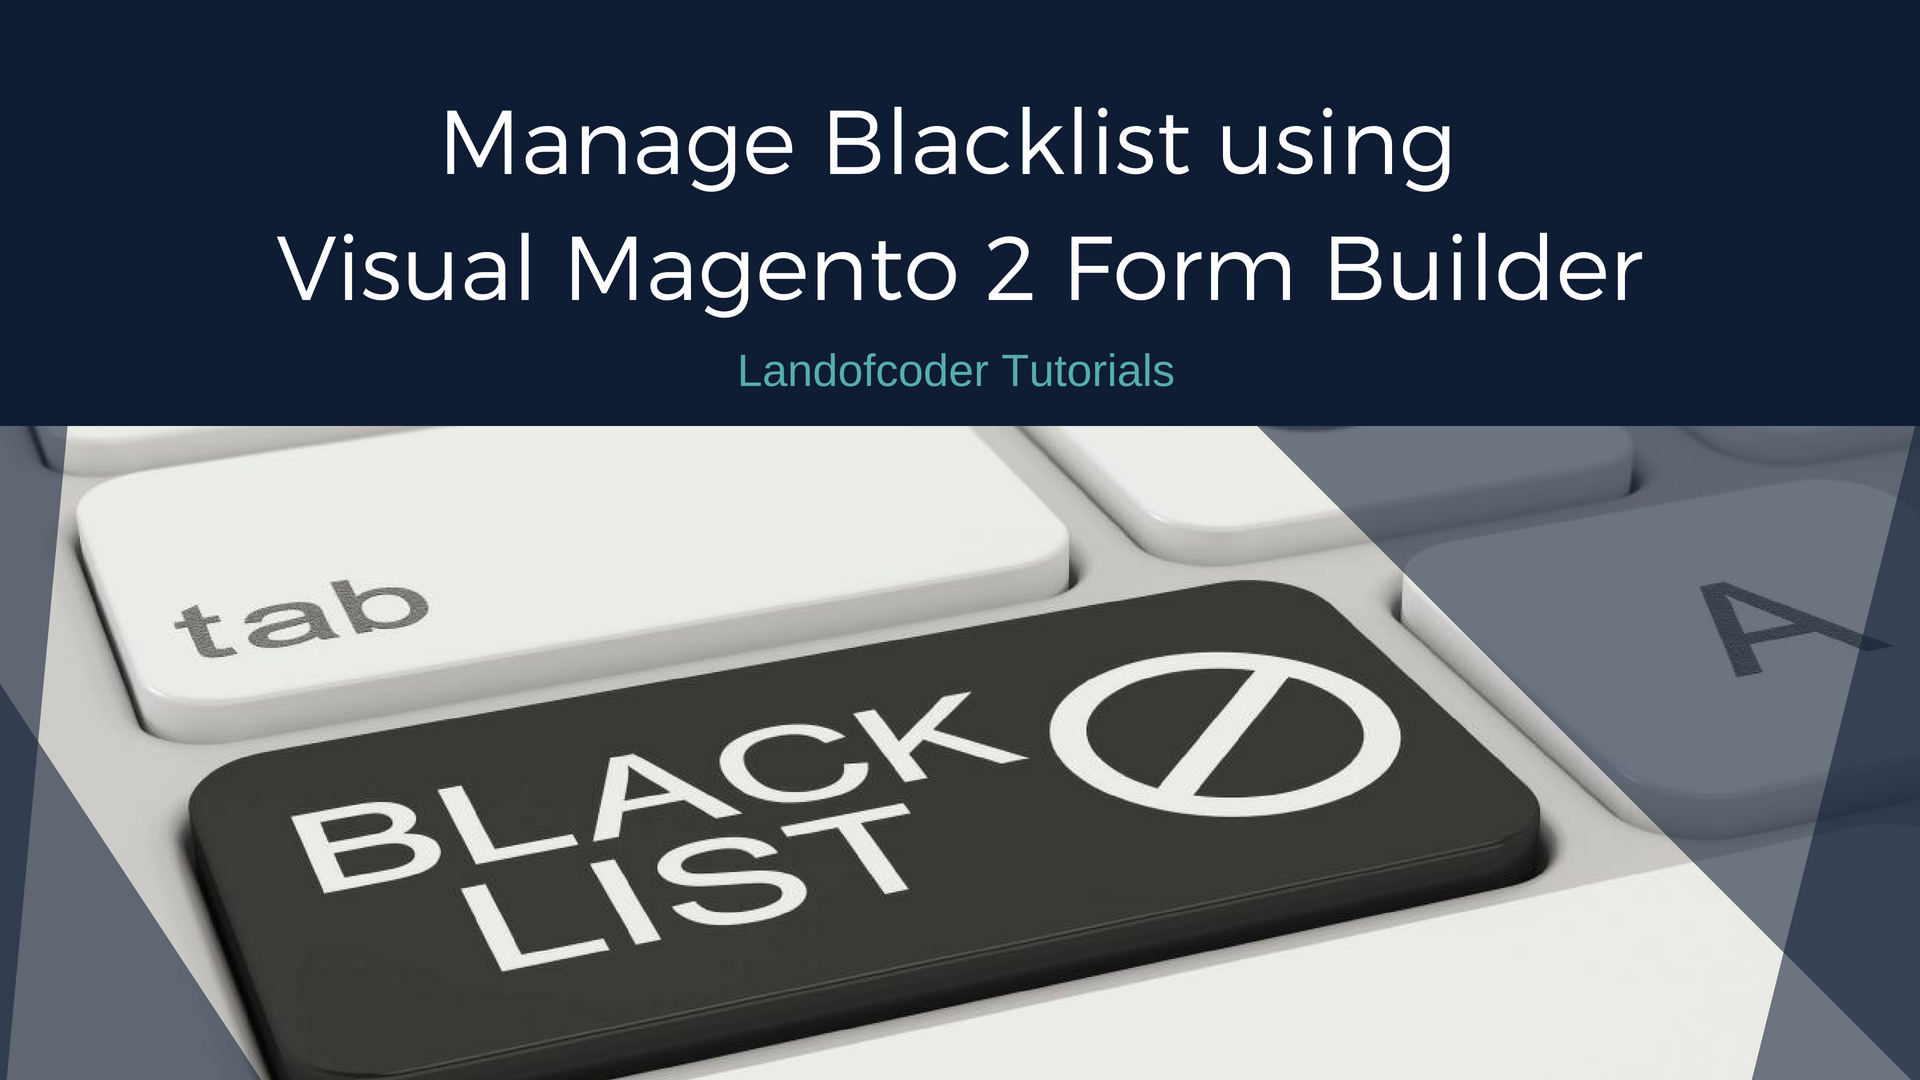 Landofcoder Tutorial: manage blacklist using visual Magento 2 Form Builder